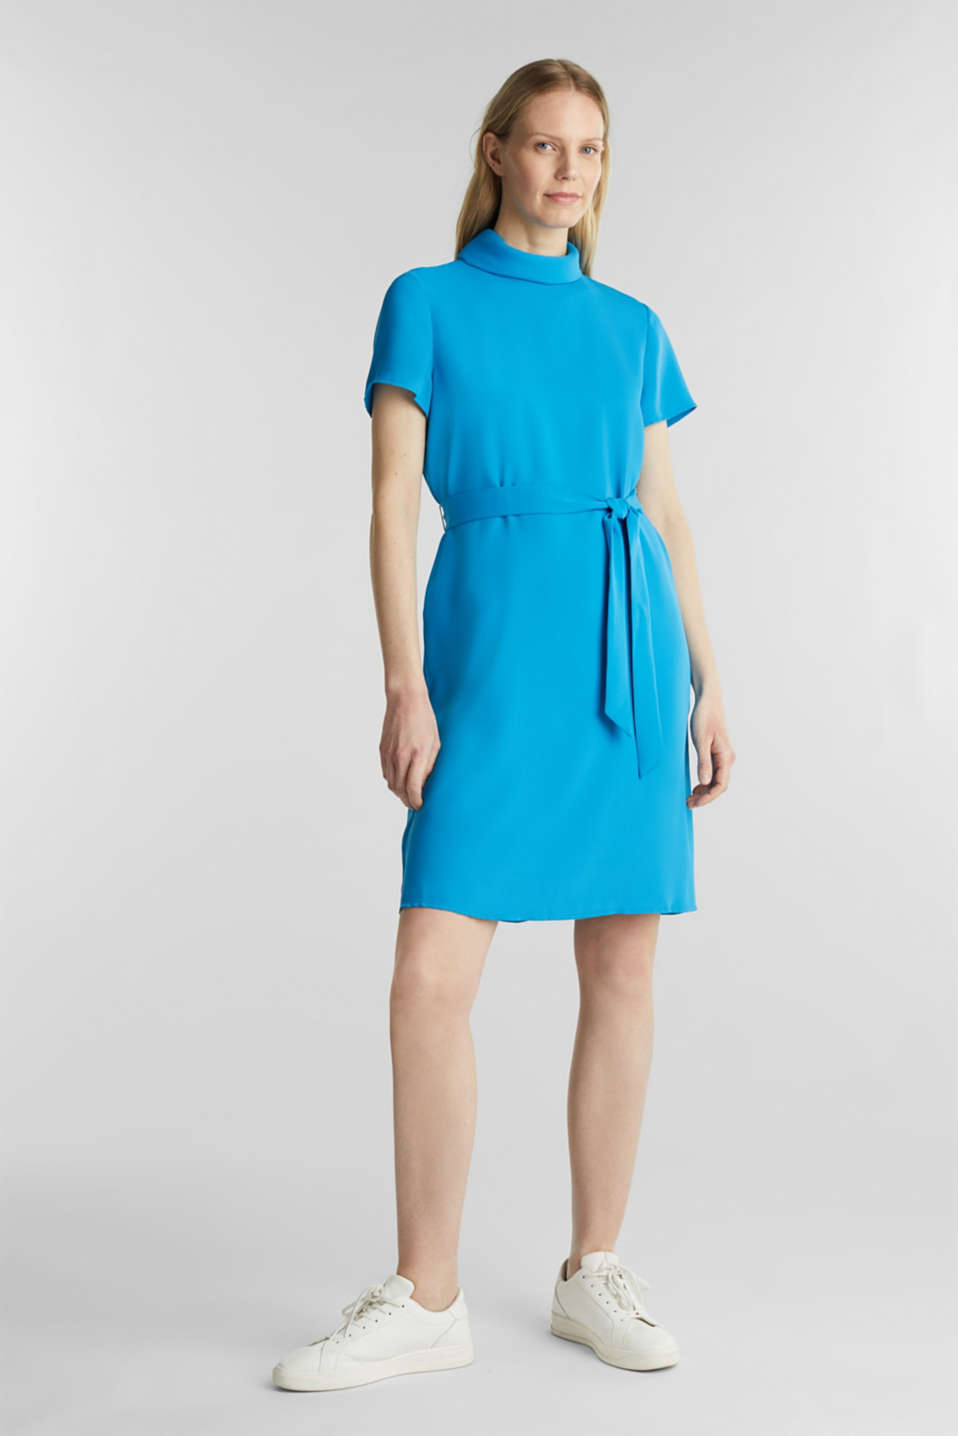 Cloth polo neck dress, DARK TURQUOISE, detail image number 5